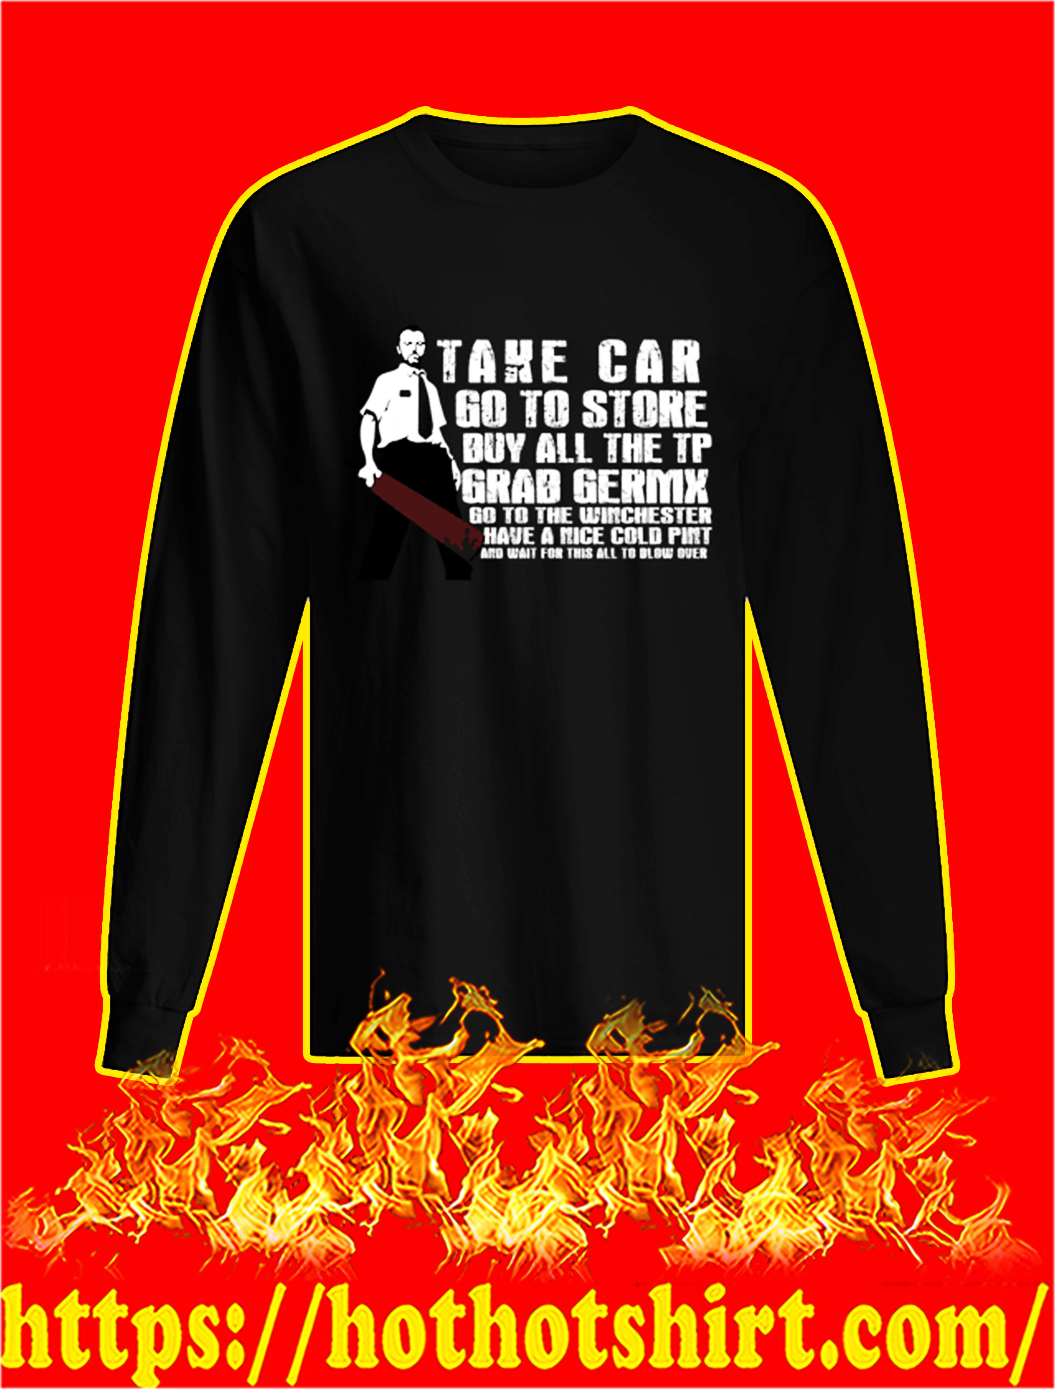 Take Car Go To Store Buy All The TP Grad Germx longsleeve tee